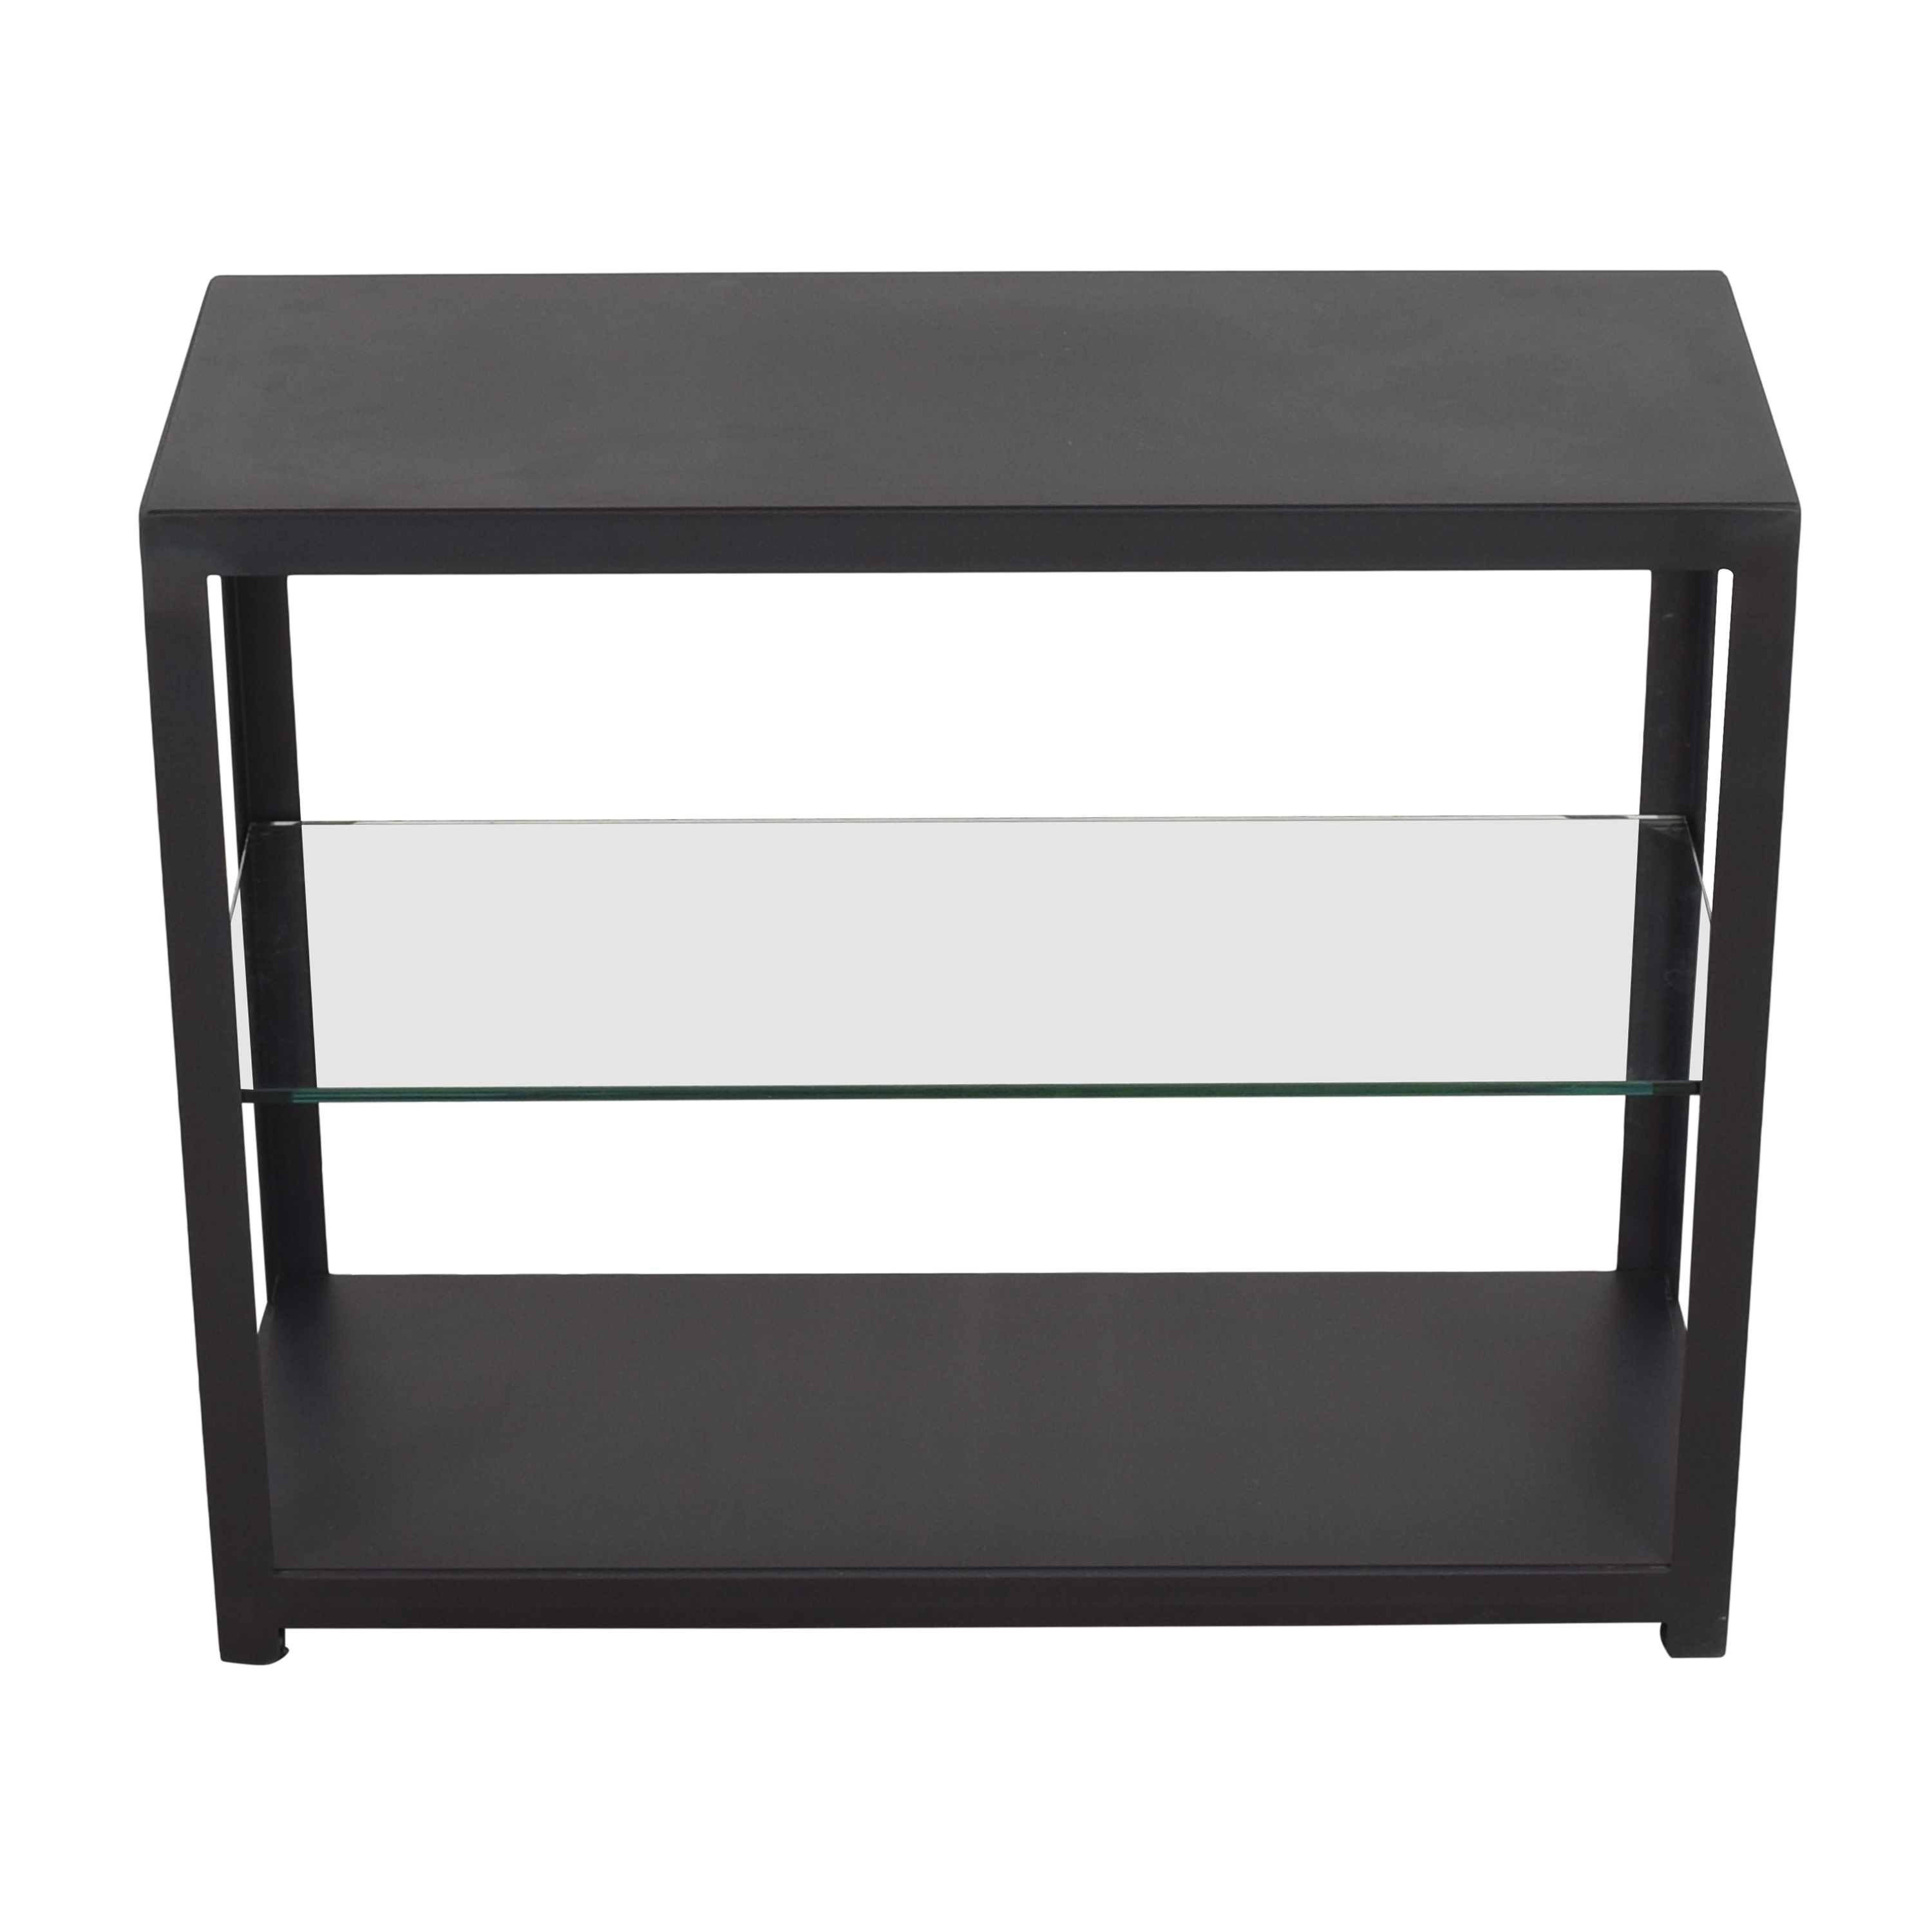 Modern Console Table used